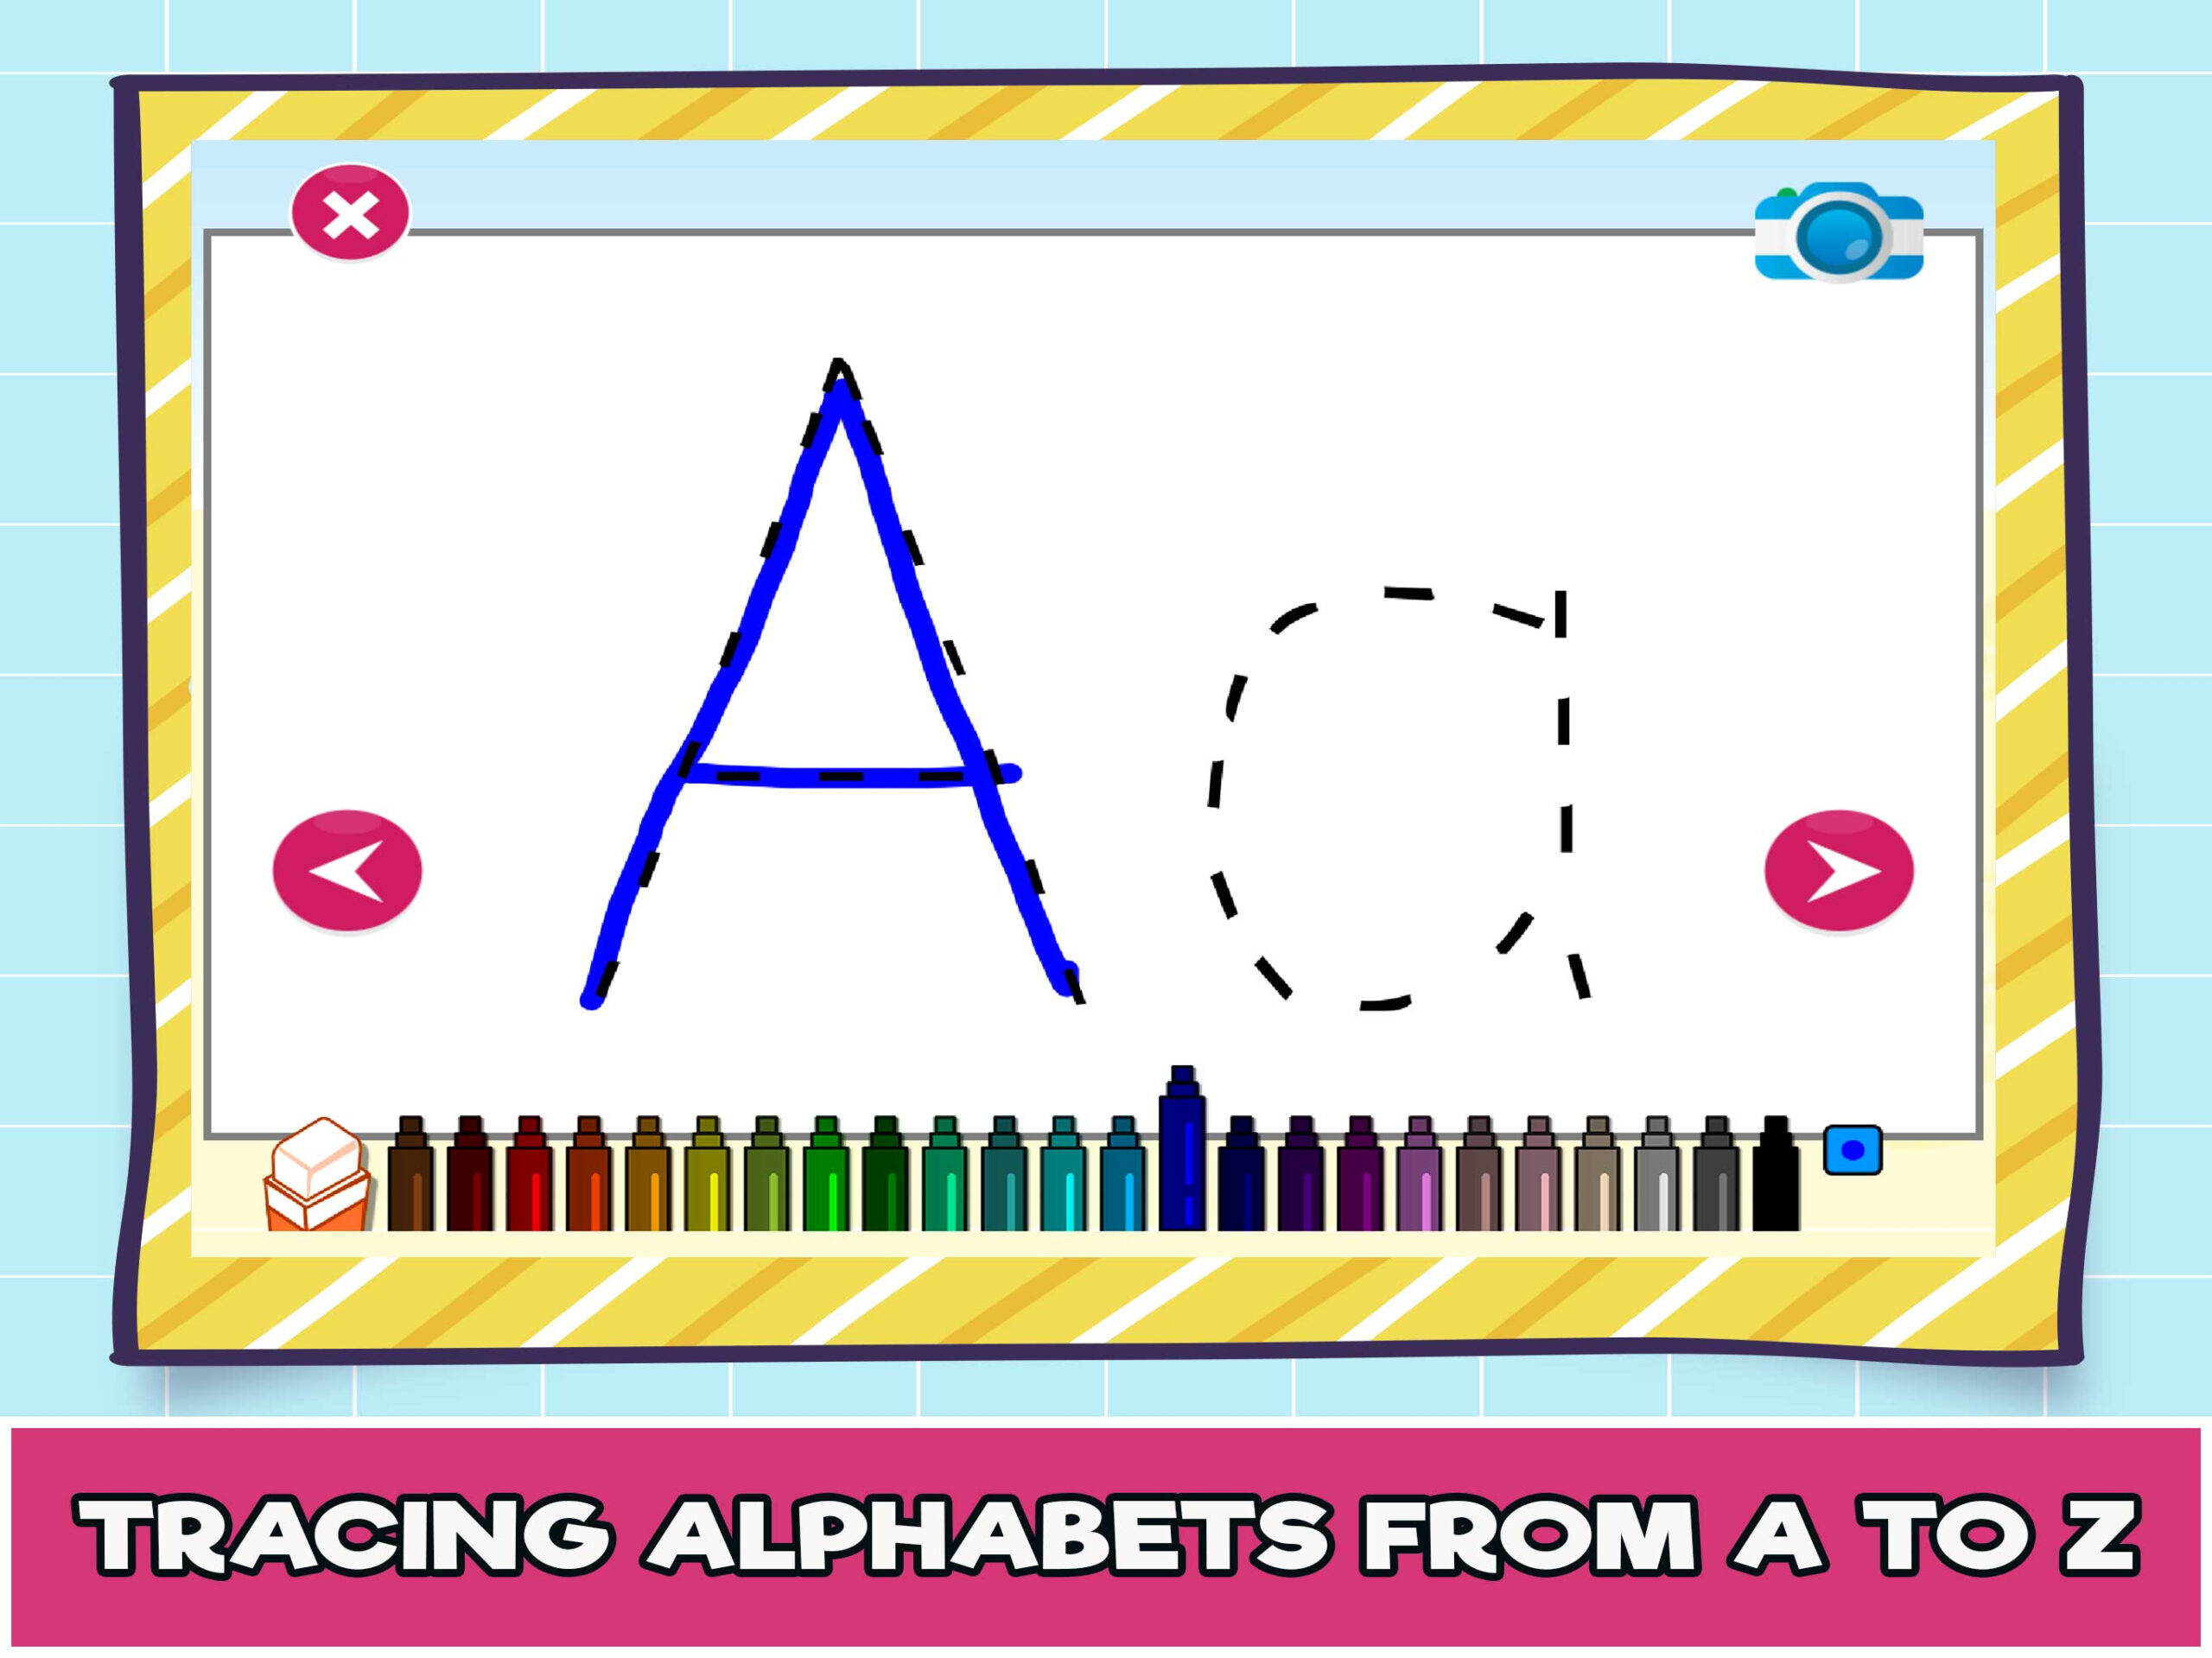 Free Online Alphabet Tracing Game For Kids - The Learning Apps throughout Abc Tracing Games